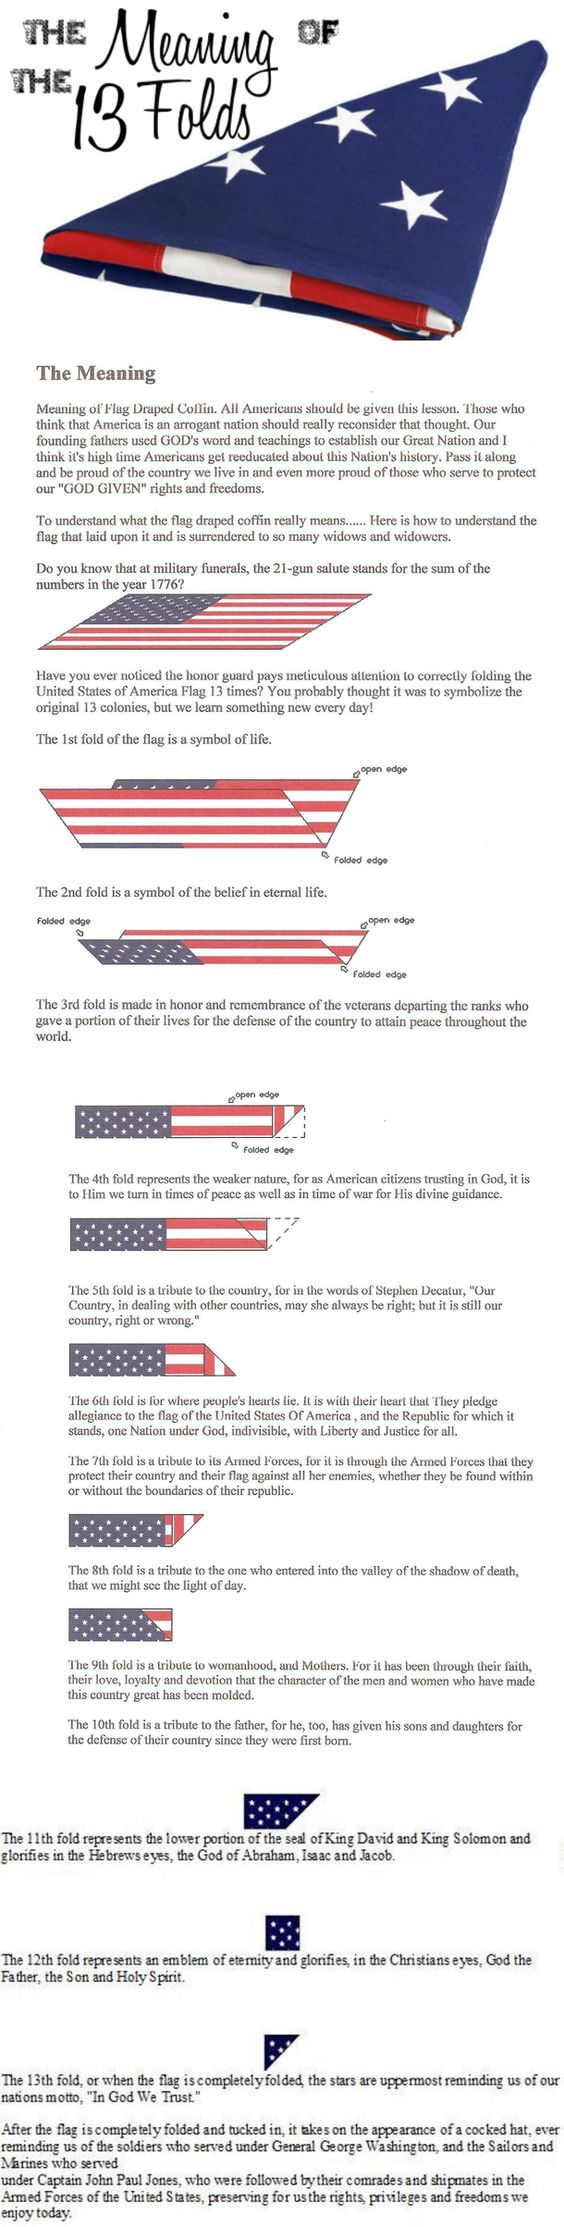 13 folds in the american flag